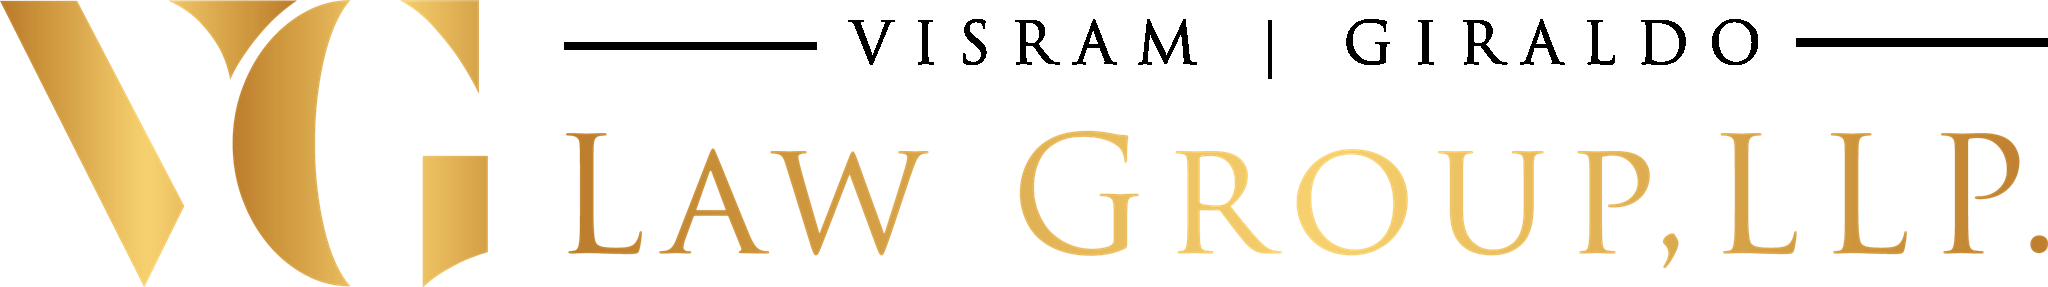 COVID-19 Insurance Attorney | VG Law Group, LLP.